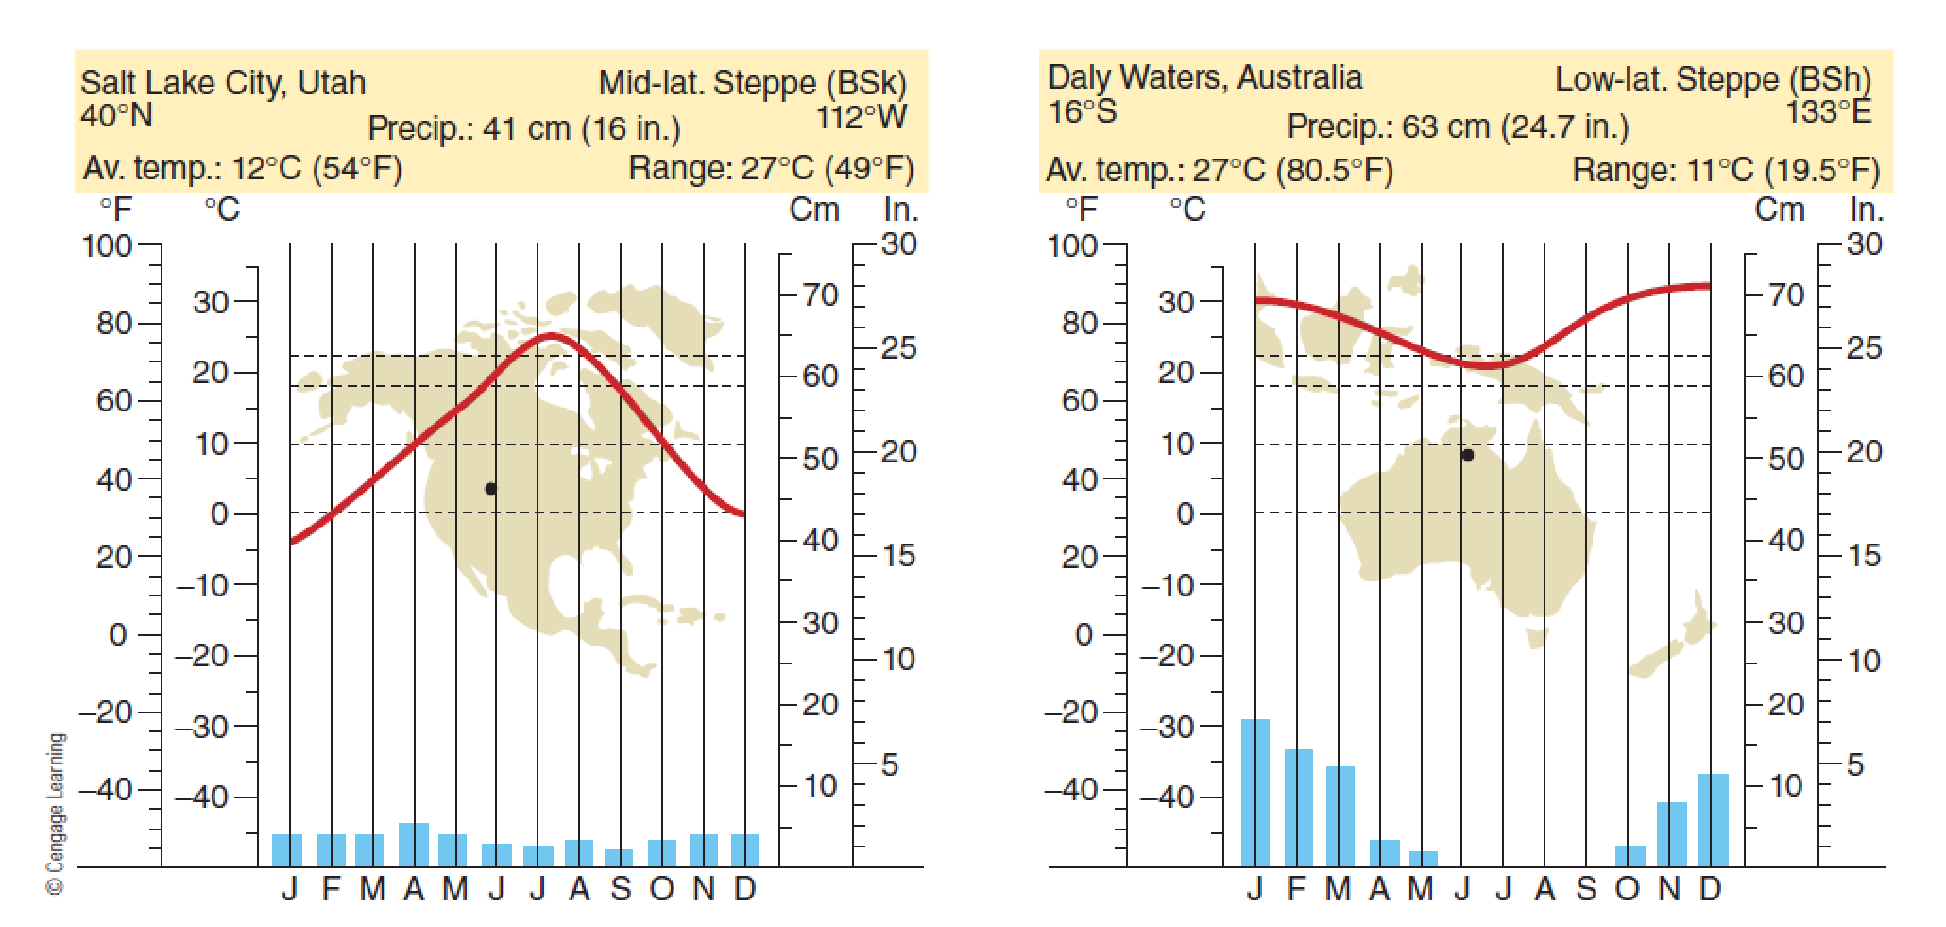 Chapter 7, Problem 21FQ, FIGURE 7.21 Climographs for steppe climate stations. What are the major differences between the